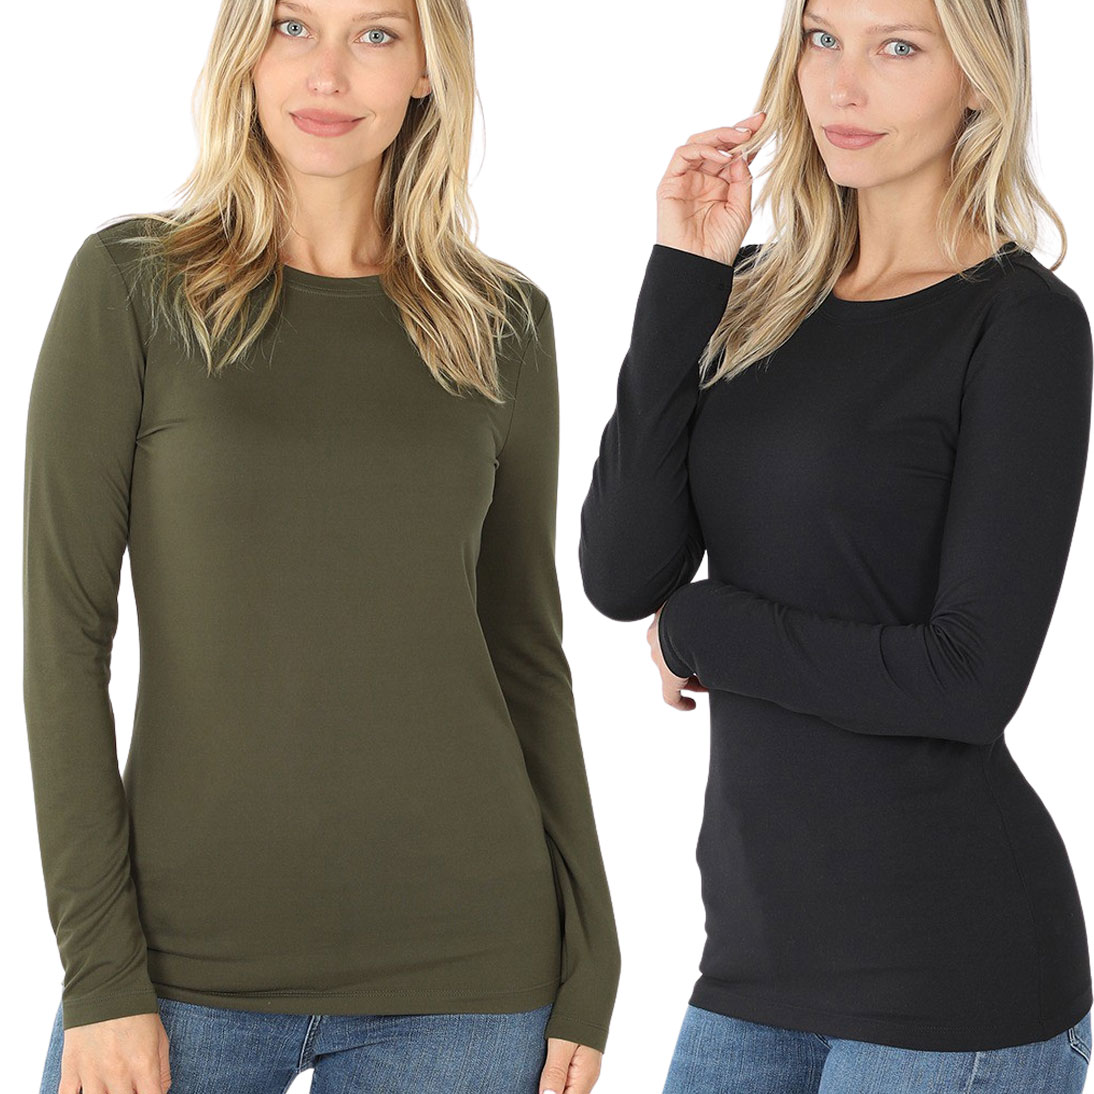 Brushed Fiber - Round Neck Long Sleeve 2053